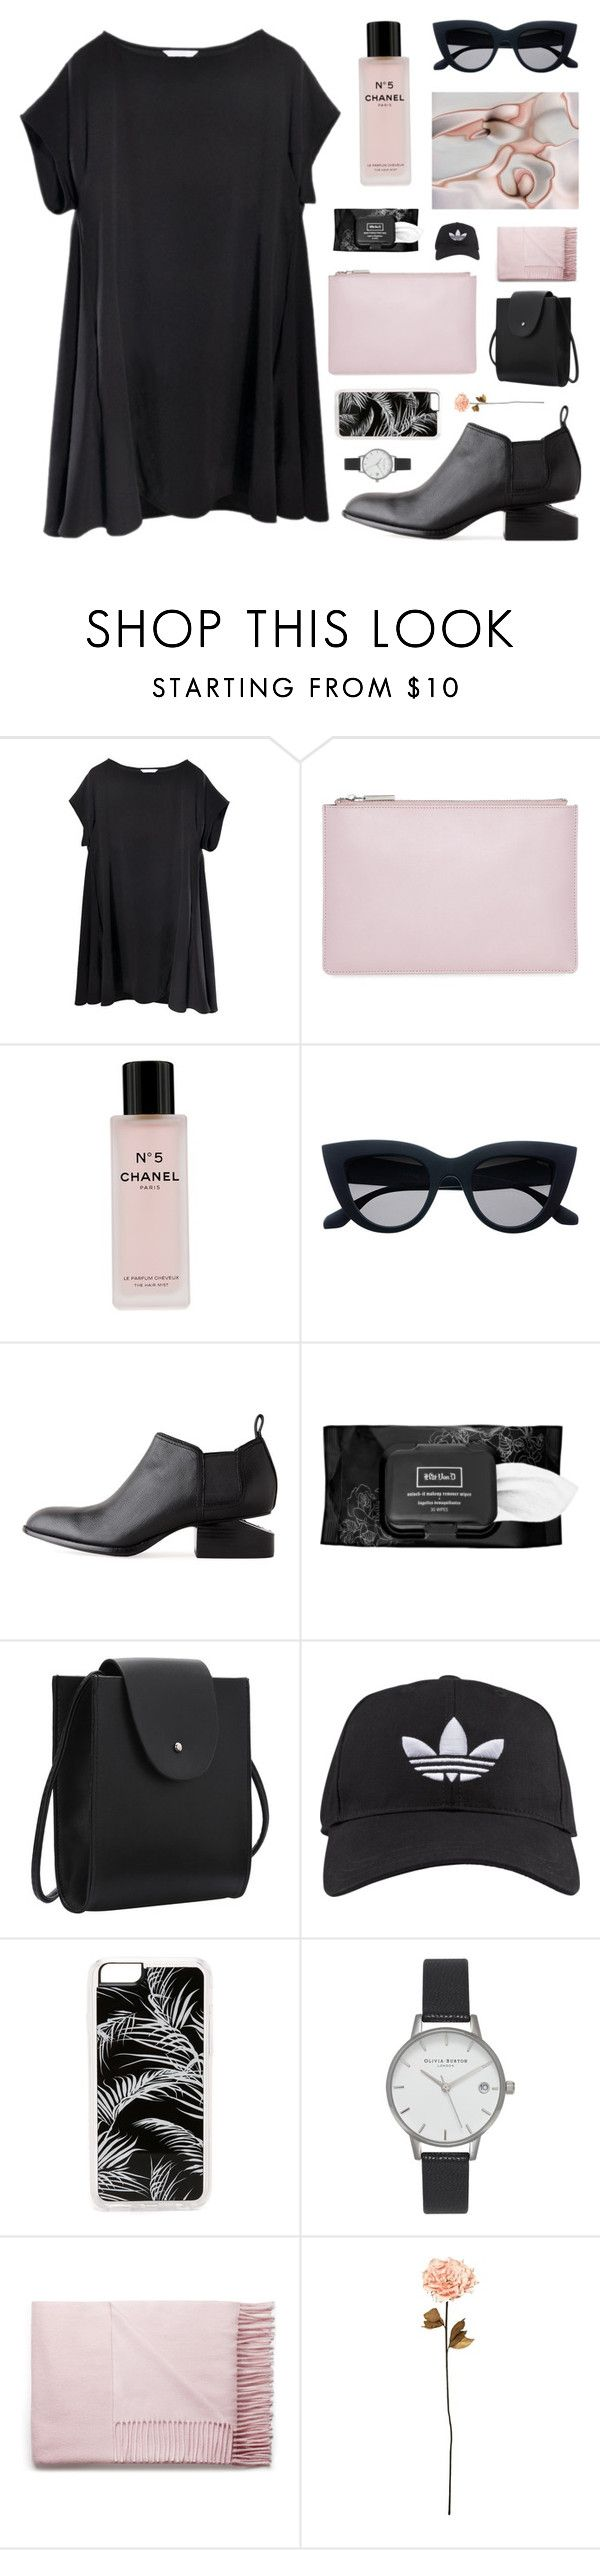 """trembling hands"" by jesicacecillia on Polyvore featuring Whistles, Chanel, Alexander Wang, Kat Von D, adidas, Zero Gravity, Olivia Burton, Acne Studios and Shabby Chic"